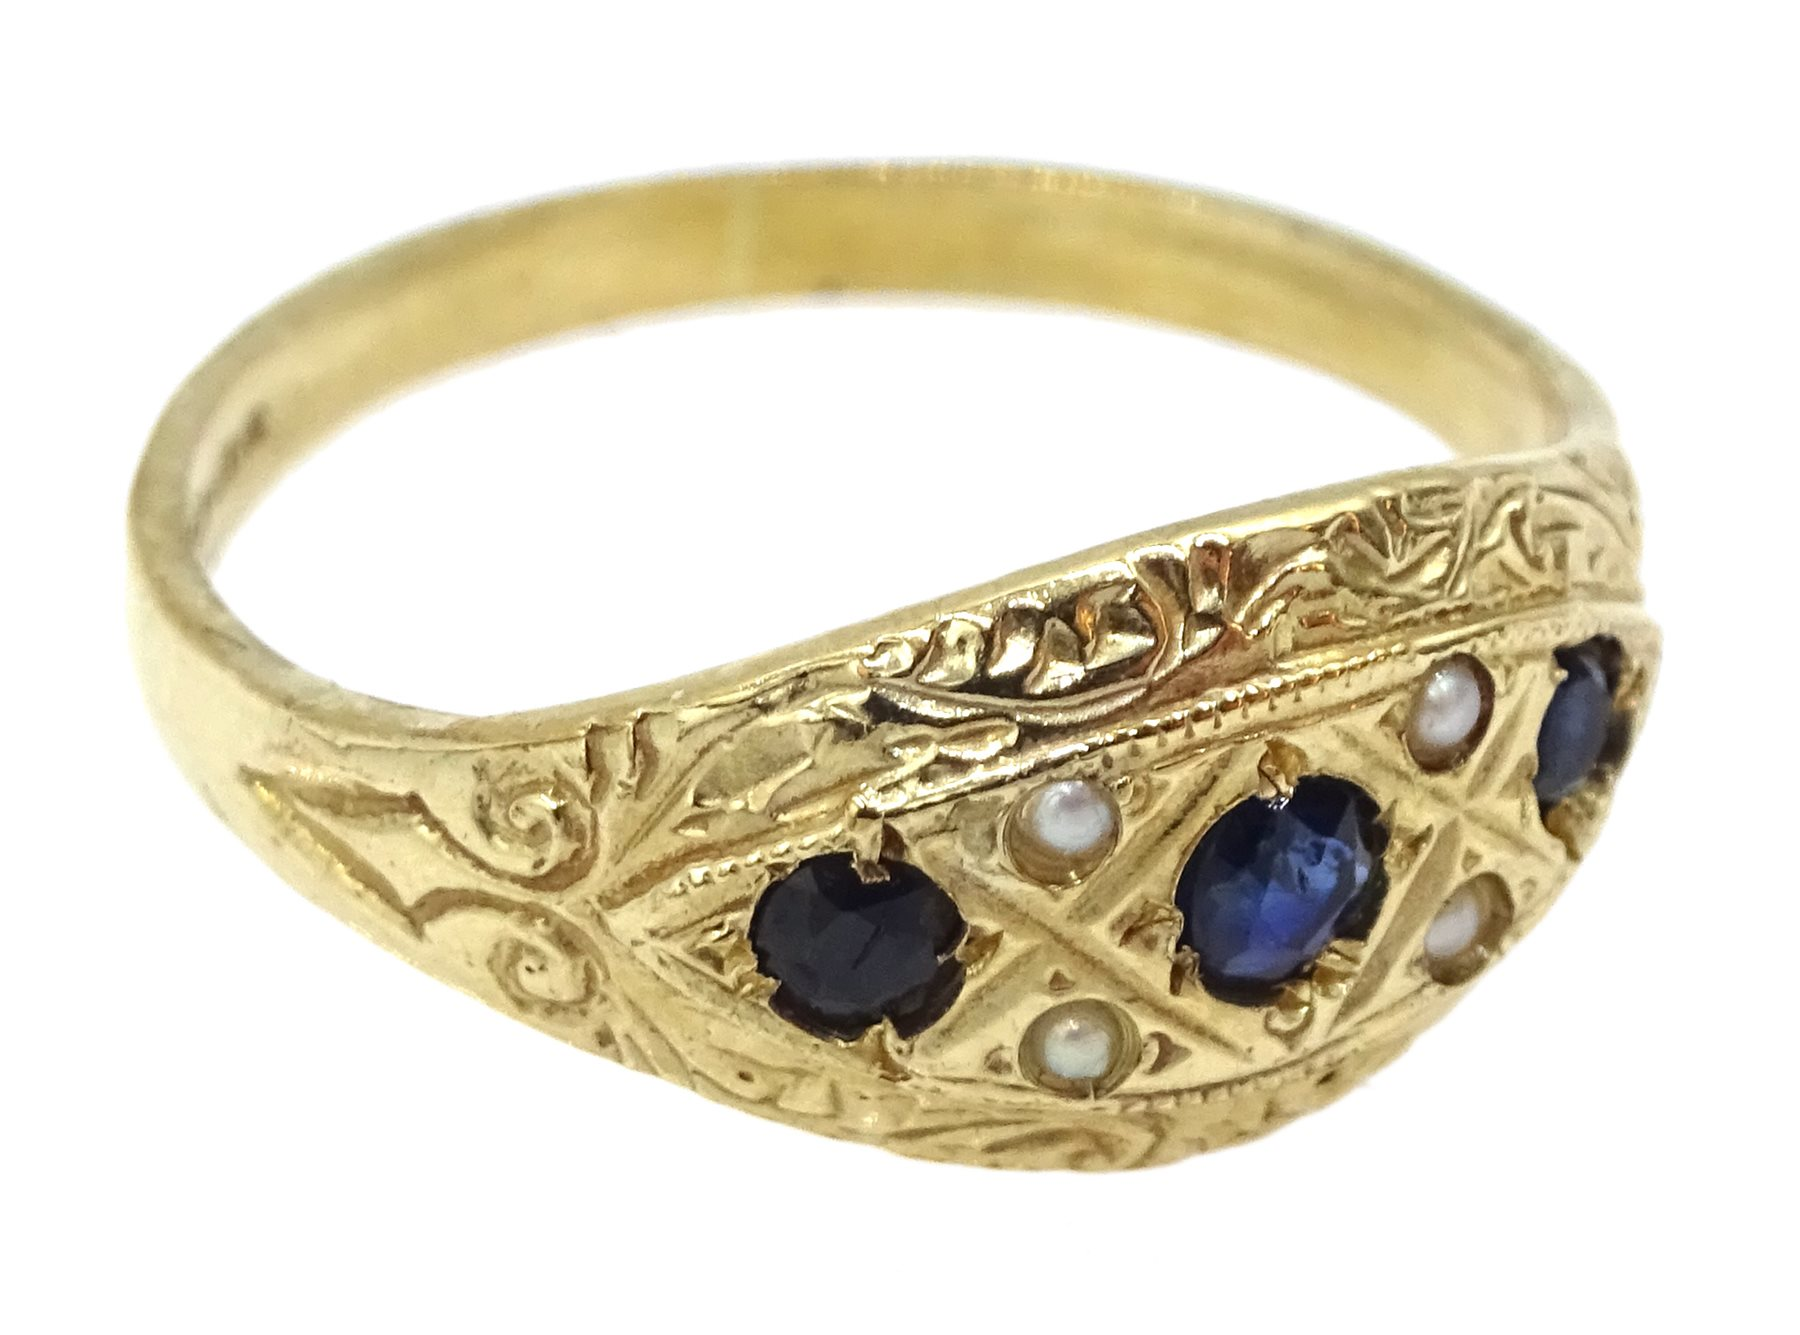 9ct gold sapphire and pearl ring, hallmarked - Image 2 of 3